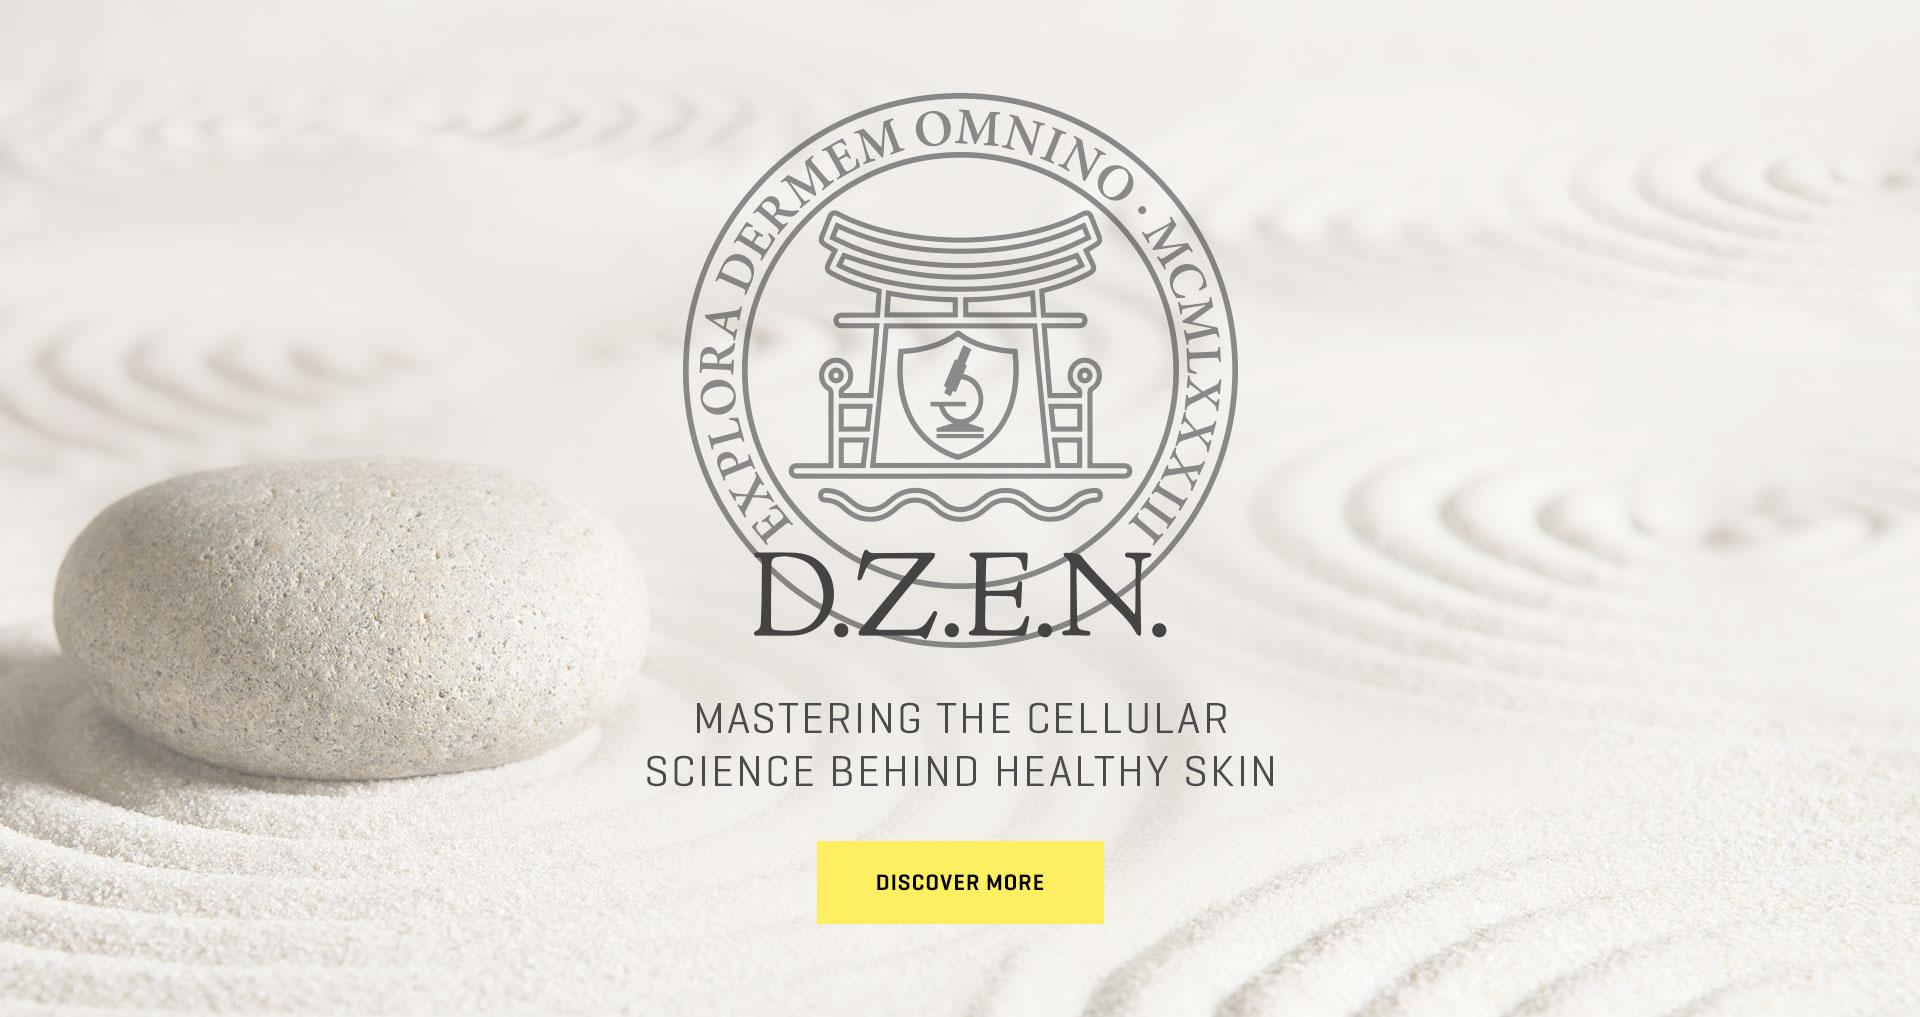 Dermafique skin care product for healthy skin